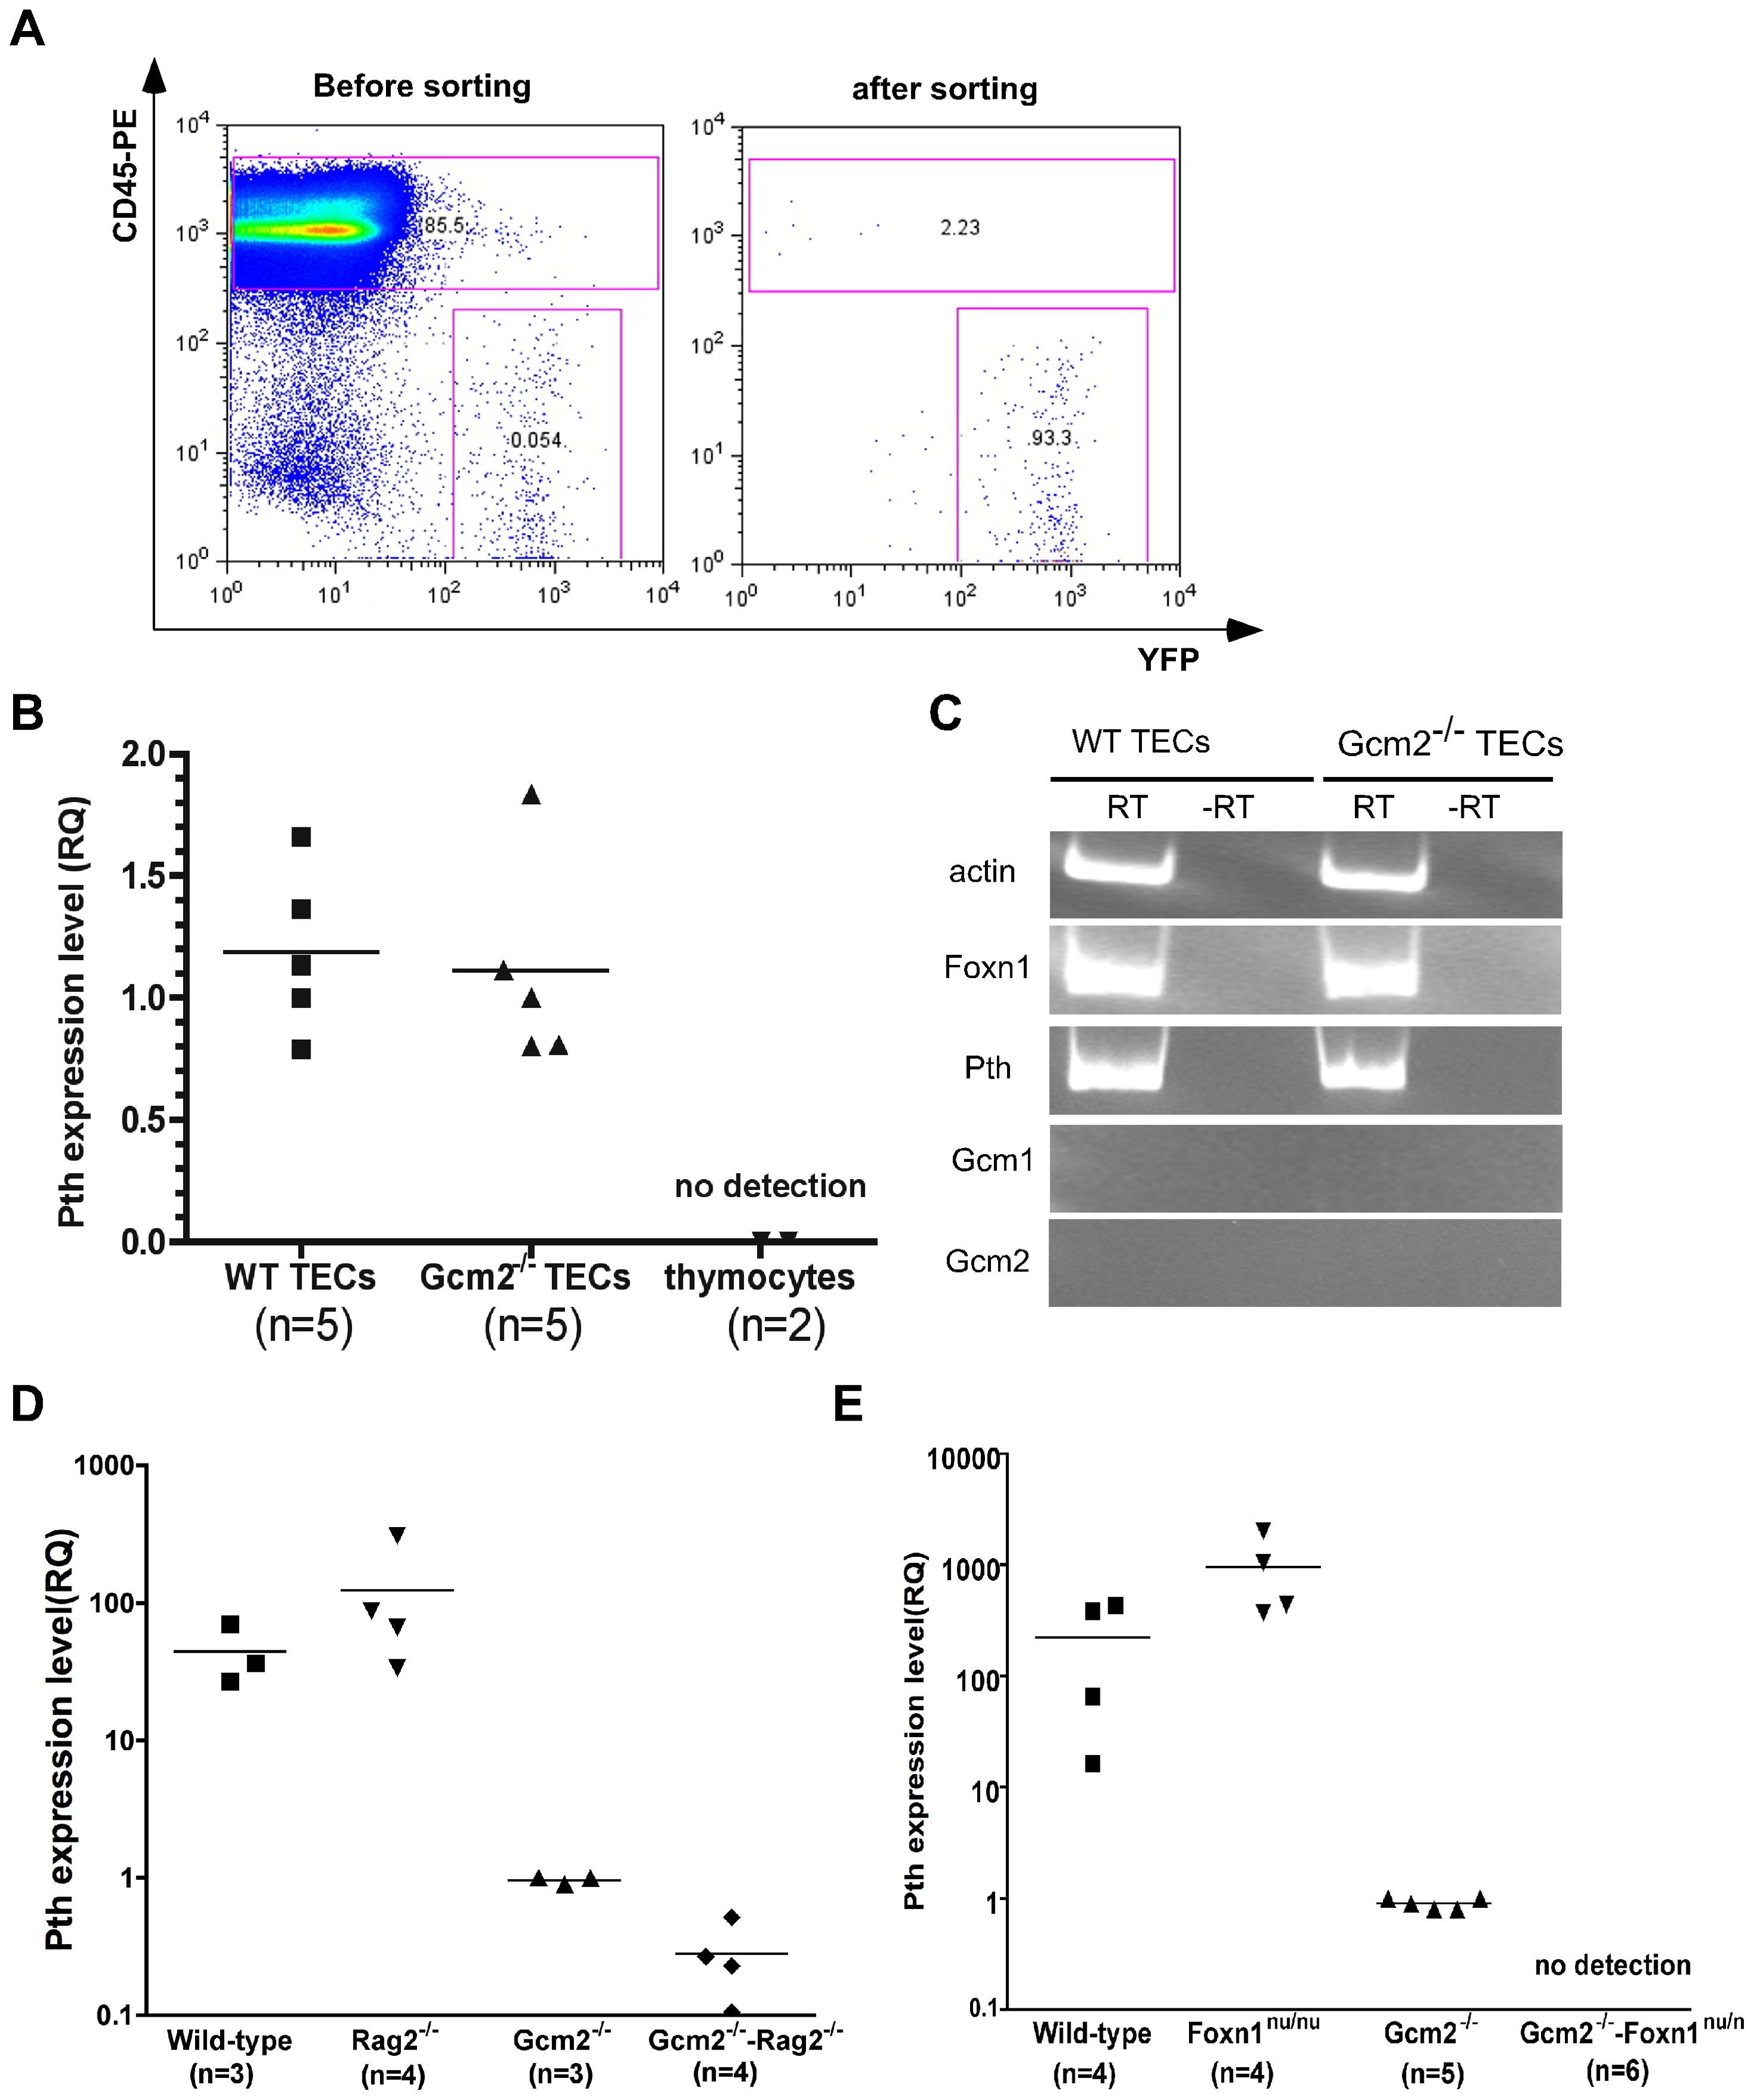 mTEC-derived PTH expression is Gcm2-independent but requires Foxn1-mediated TEC differentiation.